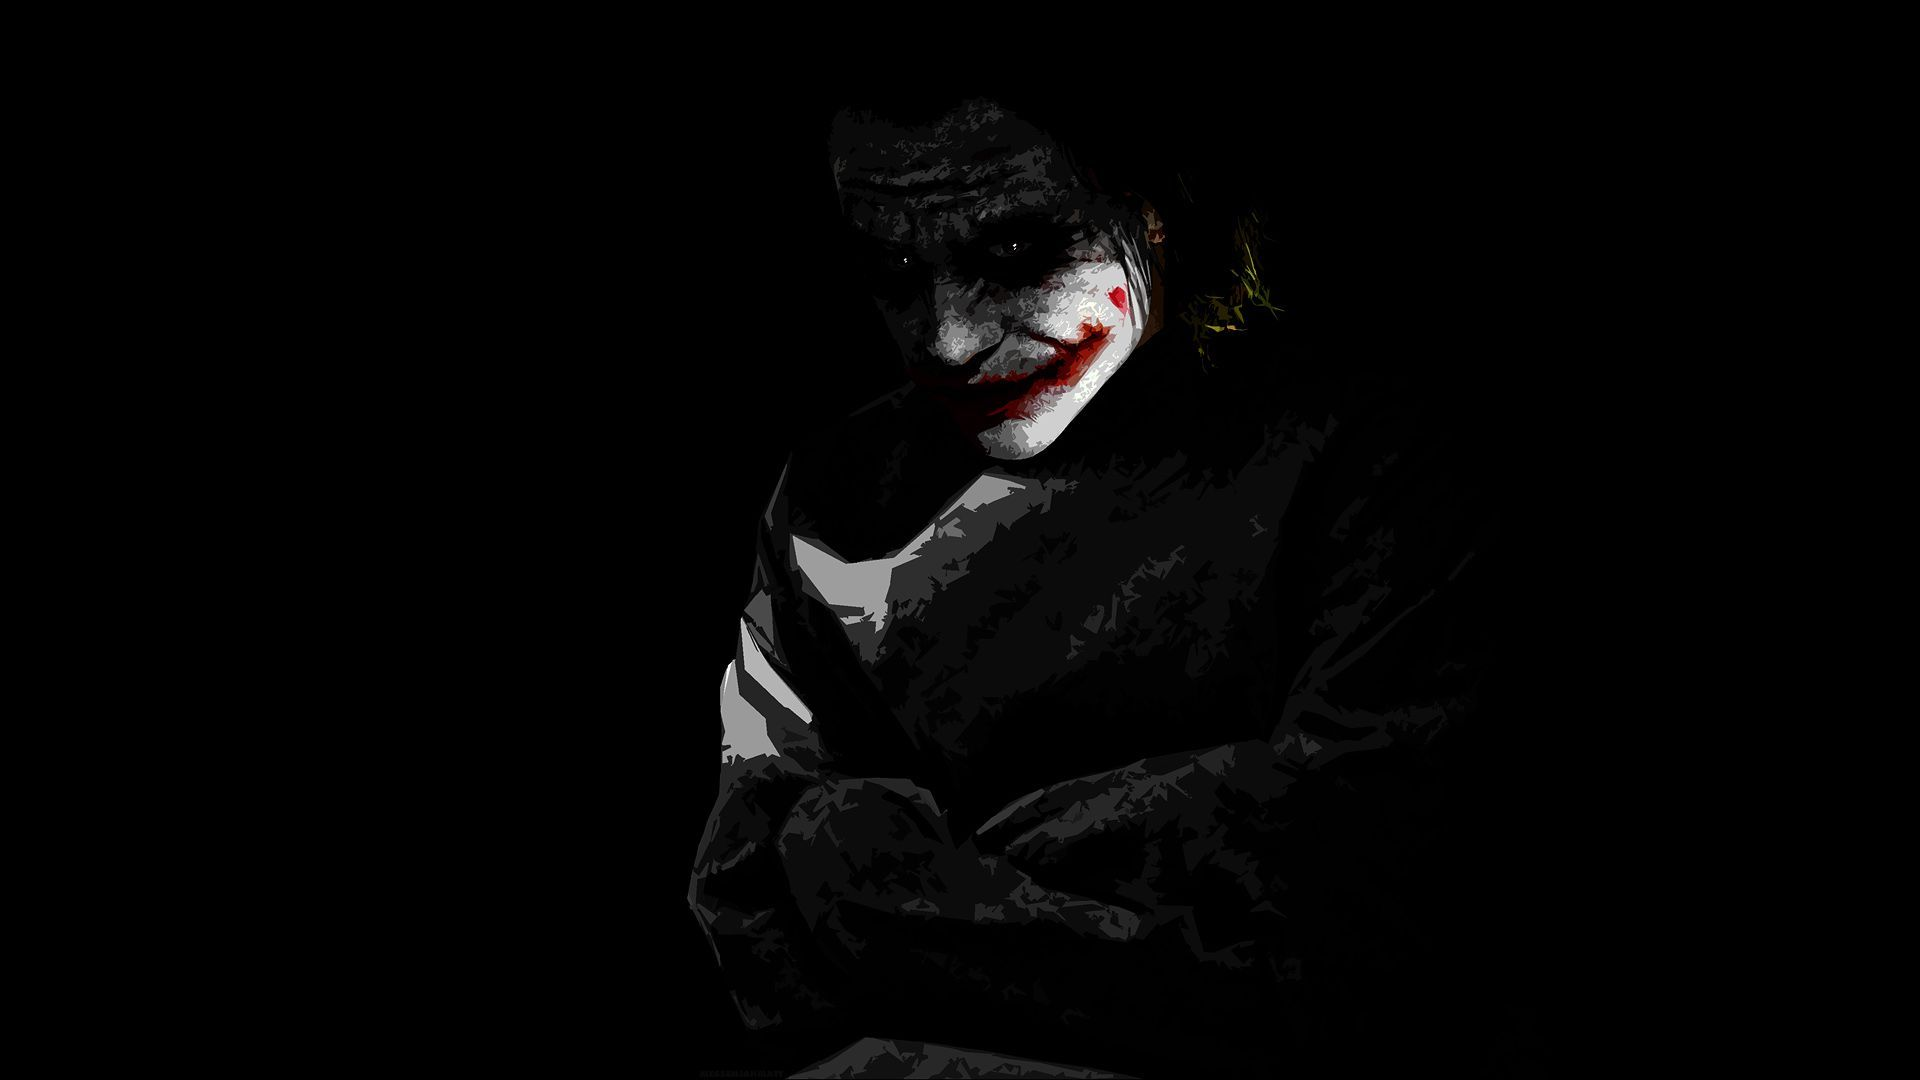 joker hd wallpapers desktop backgrounds mobile wallpapers best